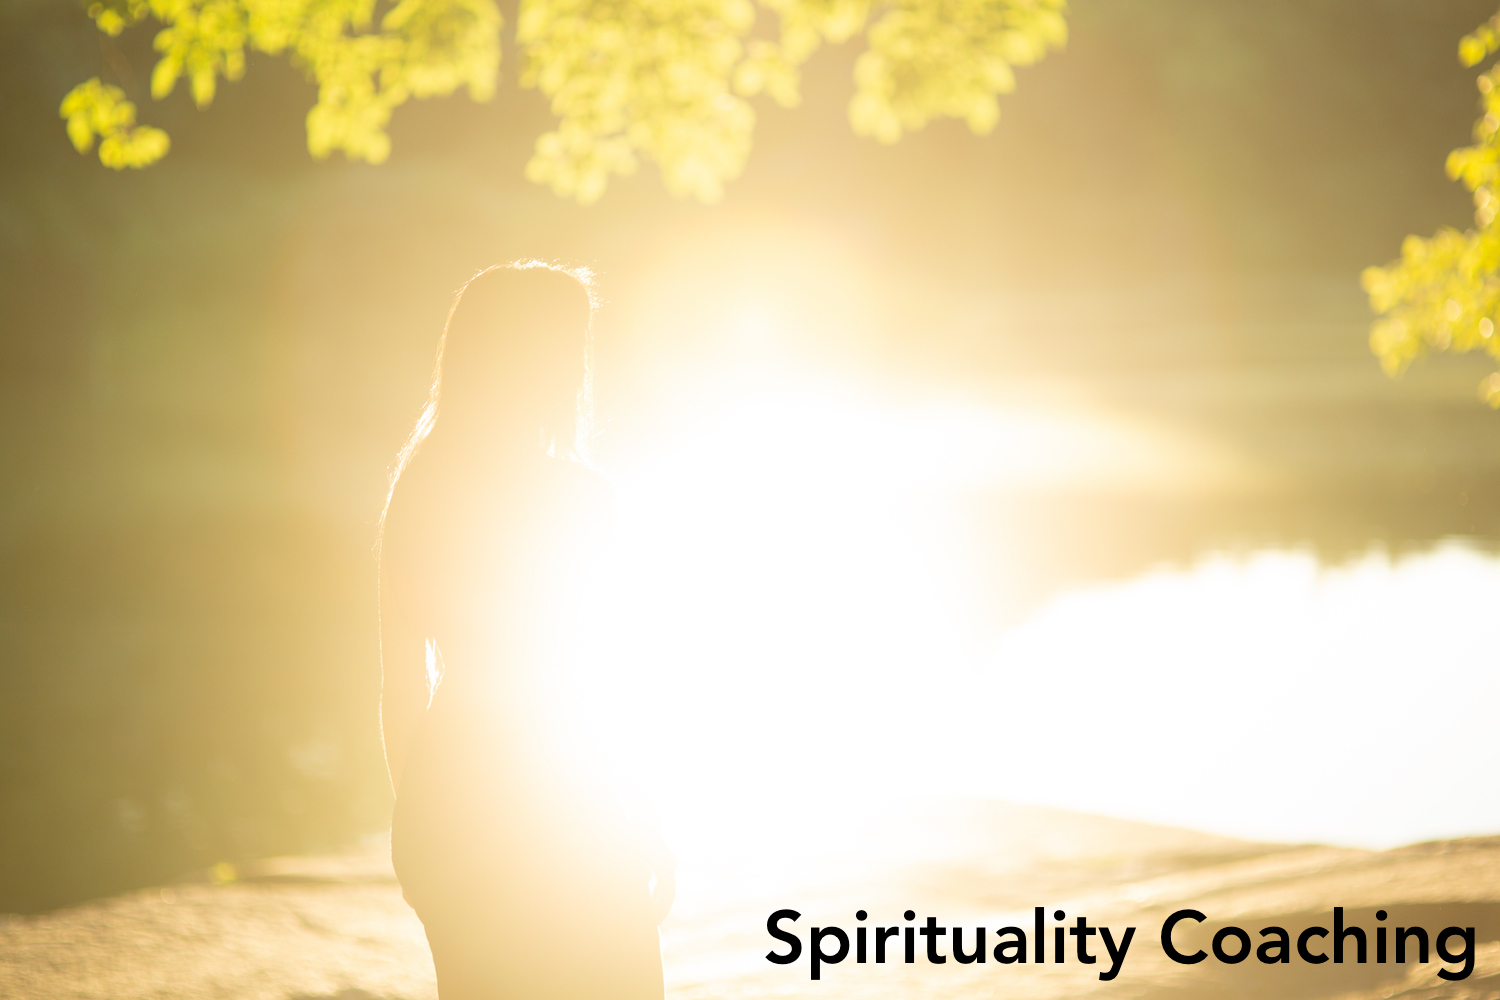 Spirituality Coaching in South Windsor, CT, Hartford County, Connecticut (formerly in Kew Gardens, Queens, New York City, New York, NY), and on the phone or online anywhere. South Windsor, CT, Hartford County, Connecticut Life Coach and Queens, New York Life Coach Ninette. Contact to speak with a Life Coach, Relationship Coach, Career Coach and Spirituality Coach in South Windsor, CT, Hartford County, Connecticut, CT (formerly in Kew Gardens, Queens, New York, NY), who offers life coaching, relationship coaching, career coaching and spirituality coaching in South Windsor, CT, Hartford County, Connecticut, CT and over the phone or online anywhere. Coaching in English And Hebrew. Seeking a life coach, relationship coach, career coach, or spirituality coach in South Windsor, CT, Hartford County, Connecticut, CT (formerly in Kew Gardens, Queens, New York, NY)? Contact South Windsor, CT, Hartford County, Connecticut Life Coach, Relationship Coach, Career Coach, and Spirituality Coach and Kew Gardens, Queens, New York Life Coach, Relationship Coach, Career Coach and Spirituality Coach Ninette for life coaching, relationship coaching, career coaching, and spirituality coaching in South Windsor, CT, Hartford County, Connecticut, CT (formerly in Kew Gardens, Queens, New York City, New York, NY) or over the phone or online anywhere. Life Coach, Relationship Coach, Career Coach and Spirituality Coach in South Windsor, CT, Hartford County, Connecticut, formerly in Kew Gardens, Queens, New York City, New York, NY, providing life coaching, relationship coaching, career coaching and spirituality coaching in South Windsor, CT, Hartford County, Connecticut, Kew Gardens, Queens, New York City, New York, NY, and over the phone or online anywhere. If you're seeking life coaching, relationship coaching, career coaching, or spirituality coaching in South Windsor, CT, Hartford County, Connecticut or Kew Gardens, Queens, New York City, New York, NY, contact South Windsor, CT, Hartford County, Connecticut Life Coach, Relationship Coach, Career Coach, and Spirituality Coach and Kew Gardens, Queens, New York Life Coach, Relationship Coach, Career Coach and Spirituality Coach Ninette for life coaching, relationship coaching, career coaching, and spirituality coaching in South Windsor, CT, Hartford County, Connecticut, CT, or Kew Gardens, Queens, New York City, New York, NY or over the phone or online anywhere. South Windsor, CT, Hartford County, Connecticut Life Coach, Relationship Coach, Career Coach and Spirituality Coach and Queens, New York Life Coach, Life Coach, Relationship Coach, Career Coach and Spirituality Coach in South Windsor, CT, Hartford County, Connecticut (formerly in Kew Gardens, Queens, New York City, New York, NY), providing life coaching, relationship coaching, career coaching and spirituality coaching in South Windsor, CT, Hartford County, Connecticut, CT (formerly in Kew Gardens, Queens, New York City, New York, NY) and over the phone or online anywhere, for powerful, empowering life coaching. Get ready for amazing coaching and guidance! Contact Life Coach Ninette to speak with a life coach, relationship coach, career coach and spirituality coach in South Windsor, CT, Hartford County, Connecticut, CT (formerly in Kew Gardens, Queens, New York City, New York, NY) for life coaching, relationship coaching, career coaching and spirituality coaching in South Windsor, CT, Hartford County, Connecticut, CT (formerly in Kew Gardens, Queens, New York City, New York, NY). South Windsor, CT, Hartford County, Connecticut Life Coach, Relationship Coach, Career Coach, and Spirituality Coach and Queens, New York Life Coach, Relationship Coach, Career Coach, and Spirituality Coach Ninette provides life coaching, relationship coaching, career coaching and spirituality coaching in South Windsor, CT, Hartford County, Connecticut, CT (formerly in Kew Gardens, Queens, New York City, New York, NY) and over the phone or online anywhere!